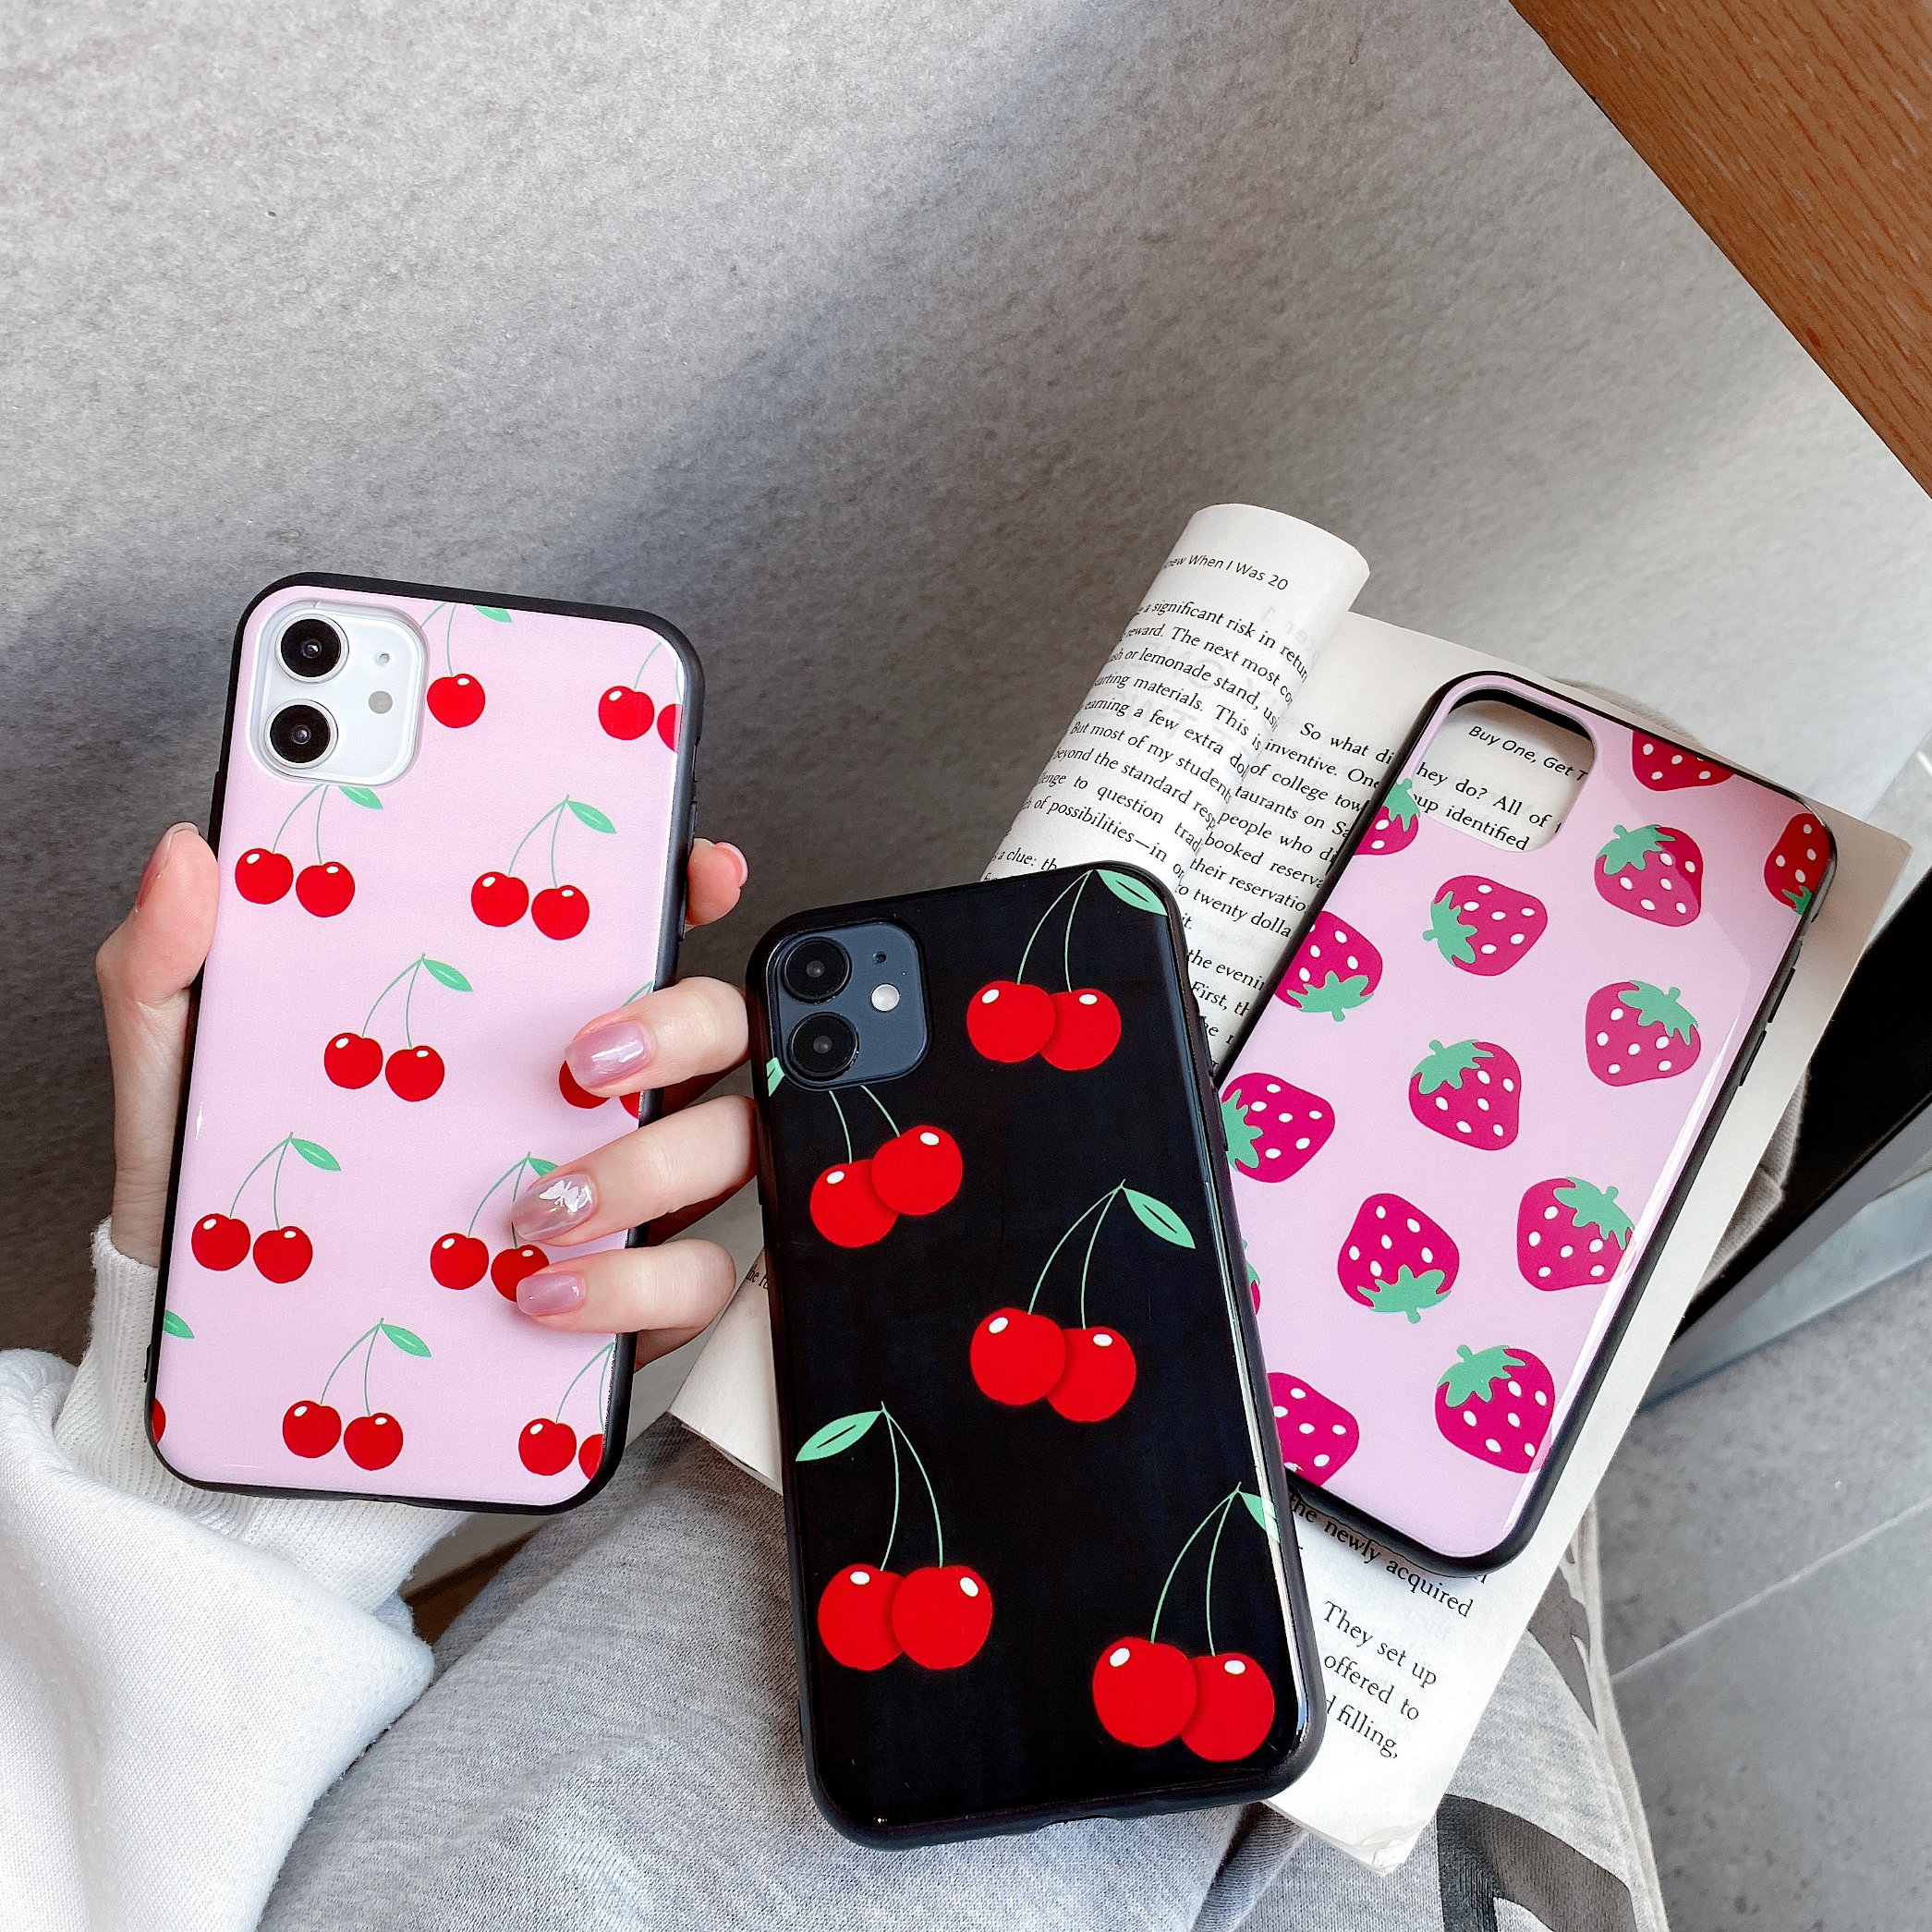 Starktni Popular Black Cherry Strawberry Classic WF iamhalsey Phone Case For iphone 11 11PROMAX XR 6 8 7Plus X XS MAX Hard Cover